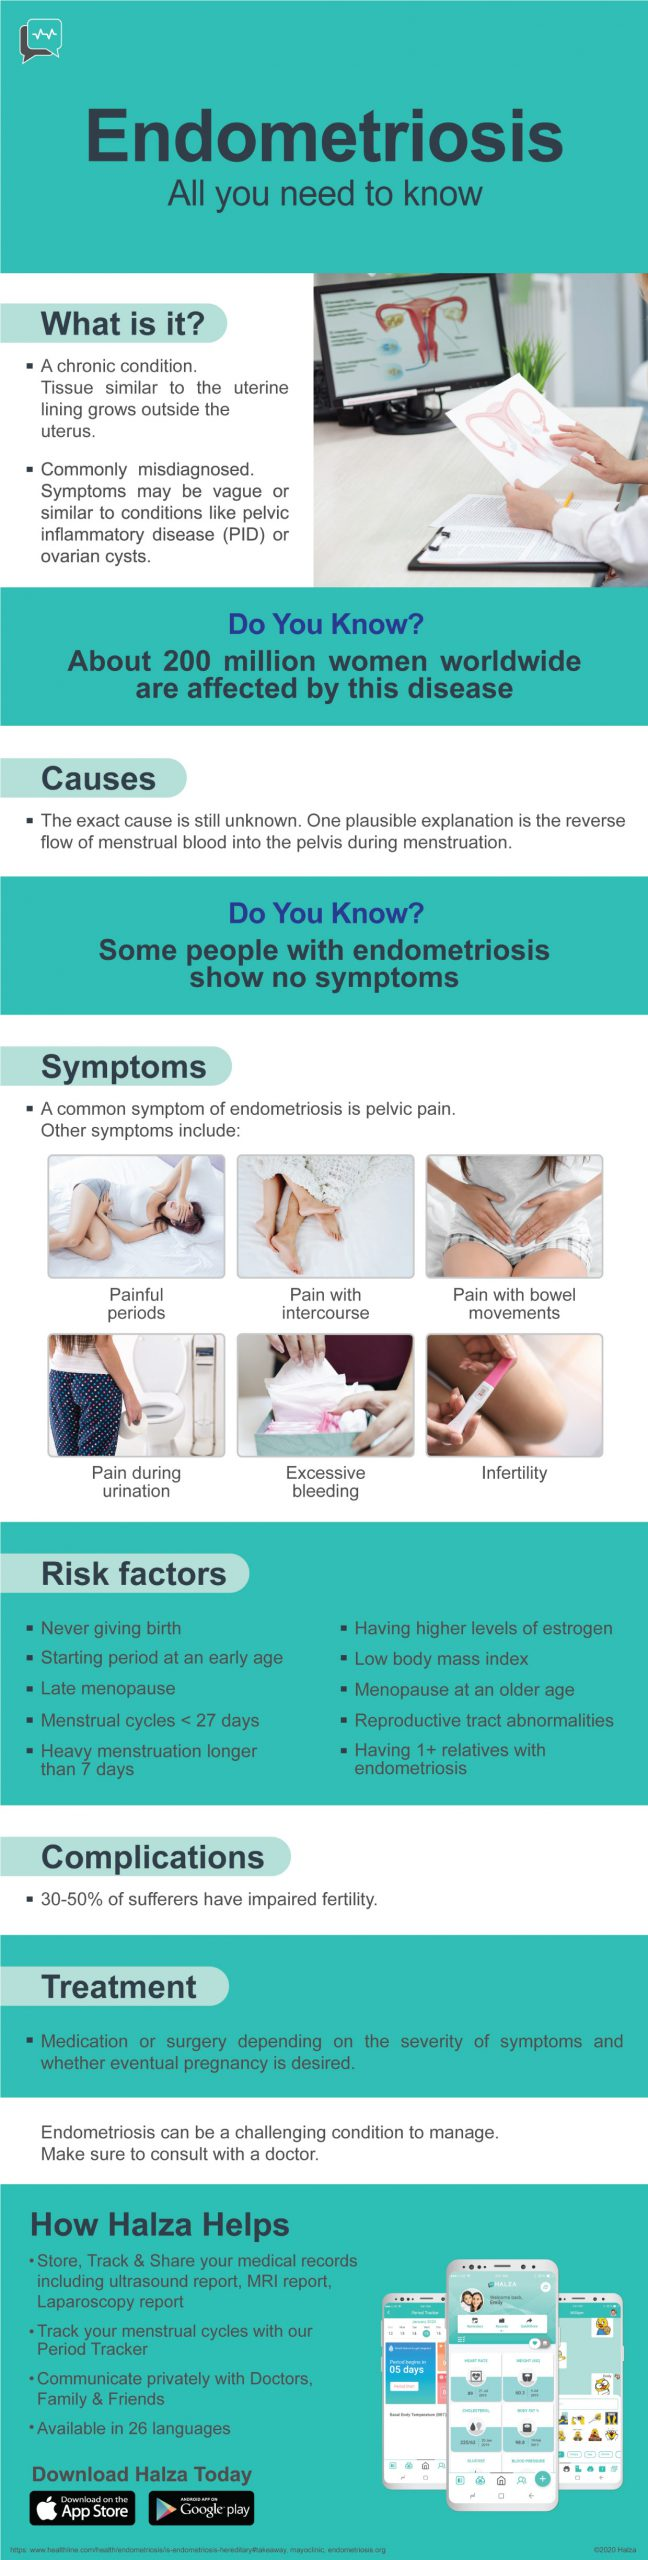 endometriosis infographic symptoms risk factor how halza can help digital health